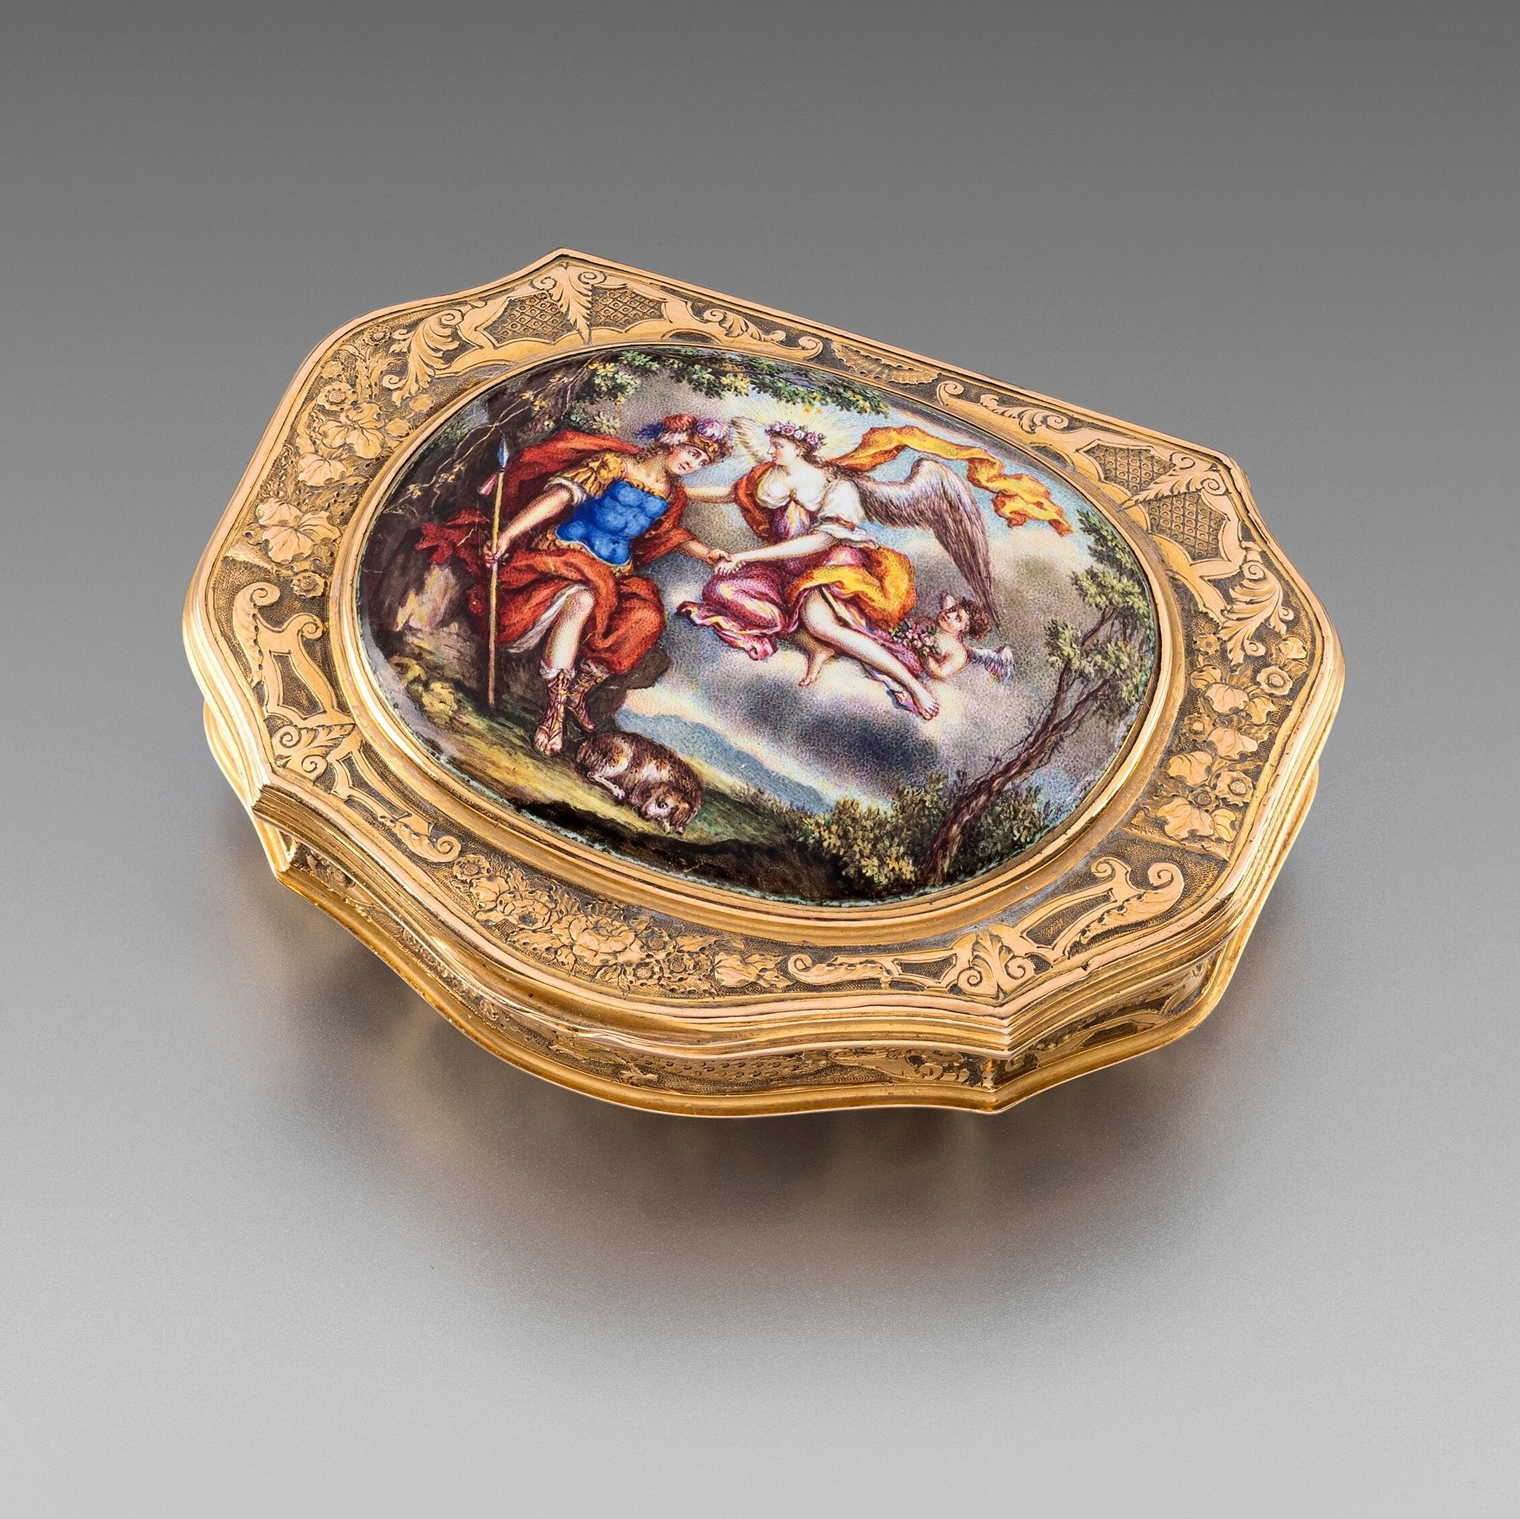 A German Enamel and Gold Box